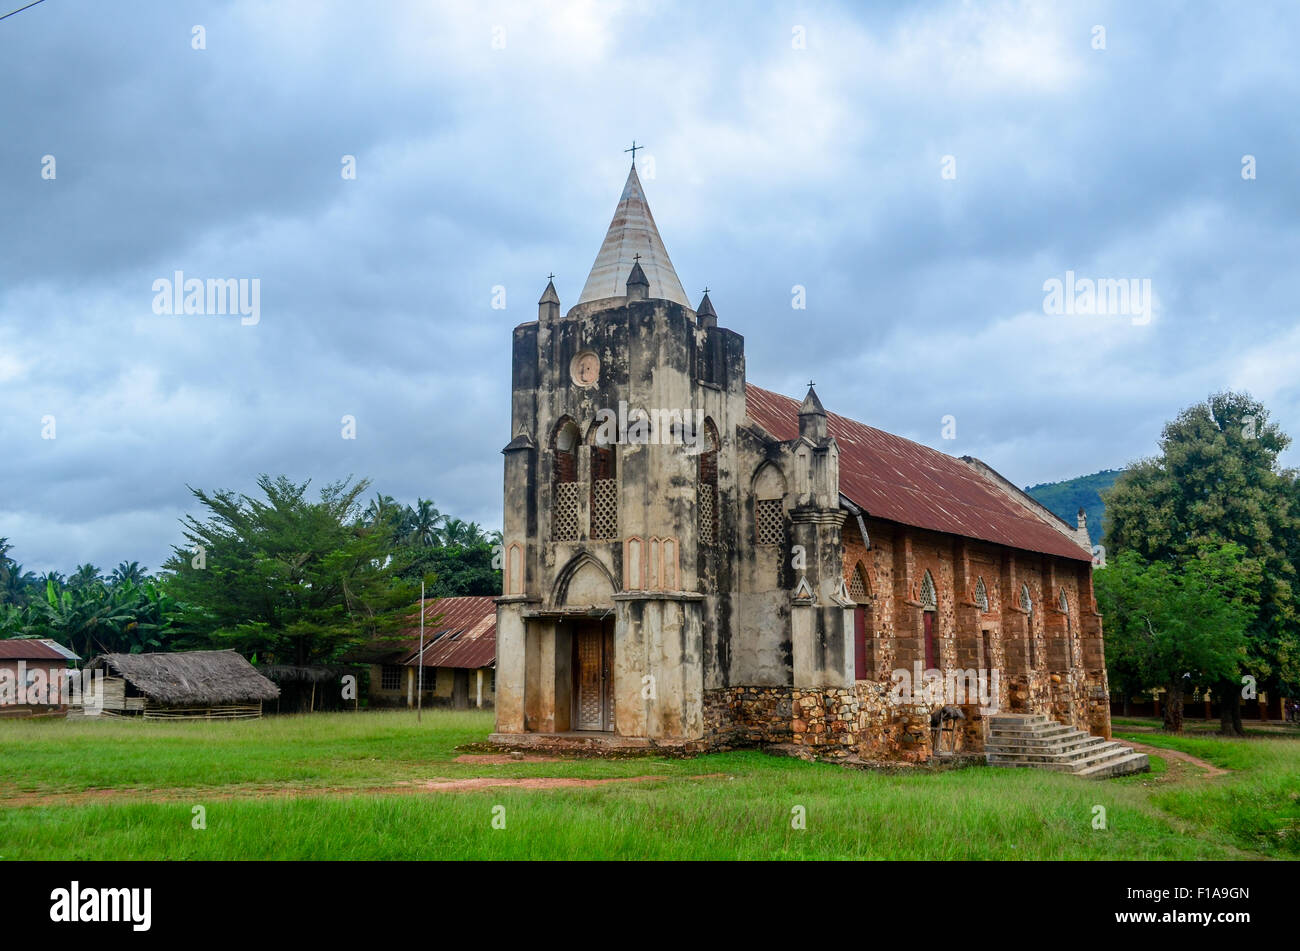 Church in Kpalimé, Togo - Stock Image